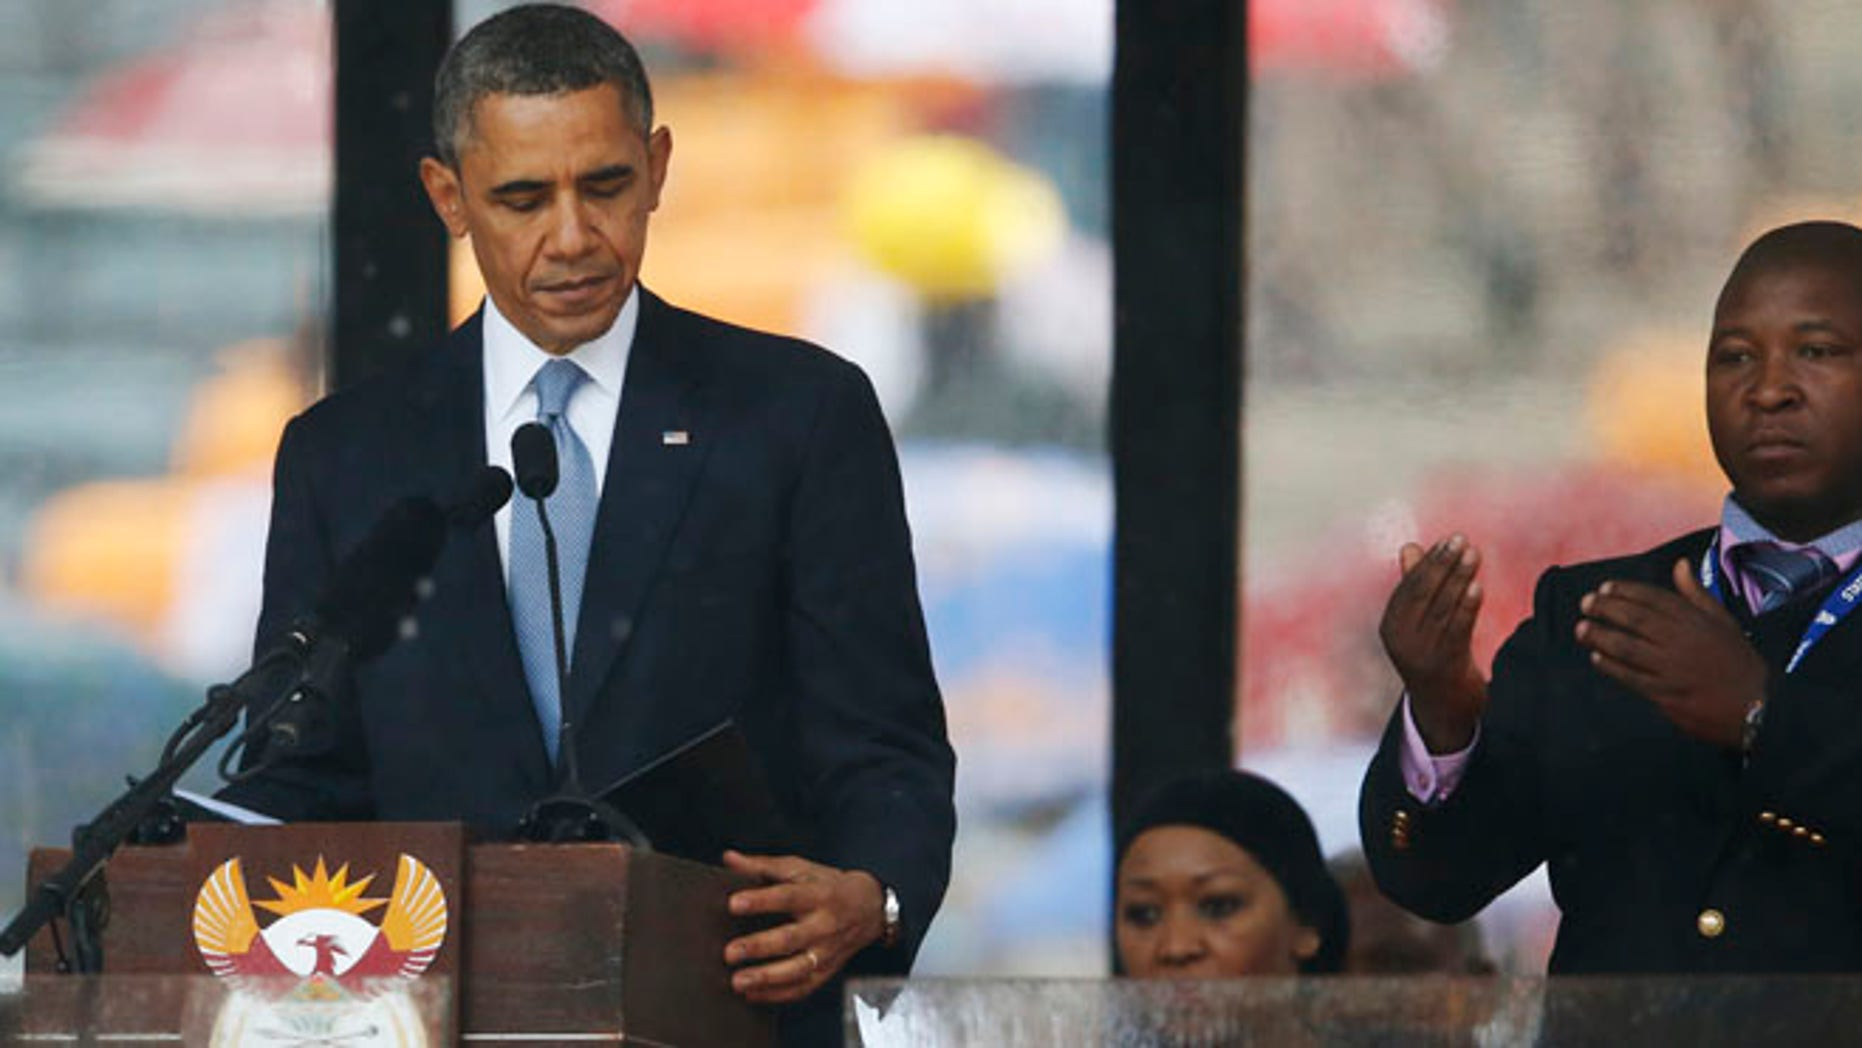 """Dec. 10, 2013: President Barack Obama looks down as he stands next to the sign language interpreter as he makes his speech at the memorial service for former South African president Nelson Mandela at the FNB Stadium in Soweto near Johannesburg.  South Africa's deaf federation said on Wednesday that the interpreter on stage for Mandela memorial was a """"fake."""" (AP)"""